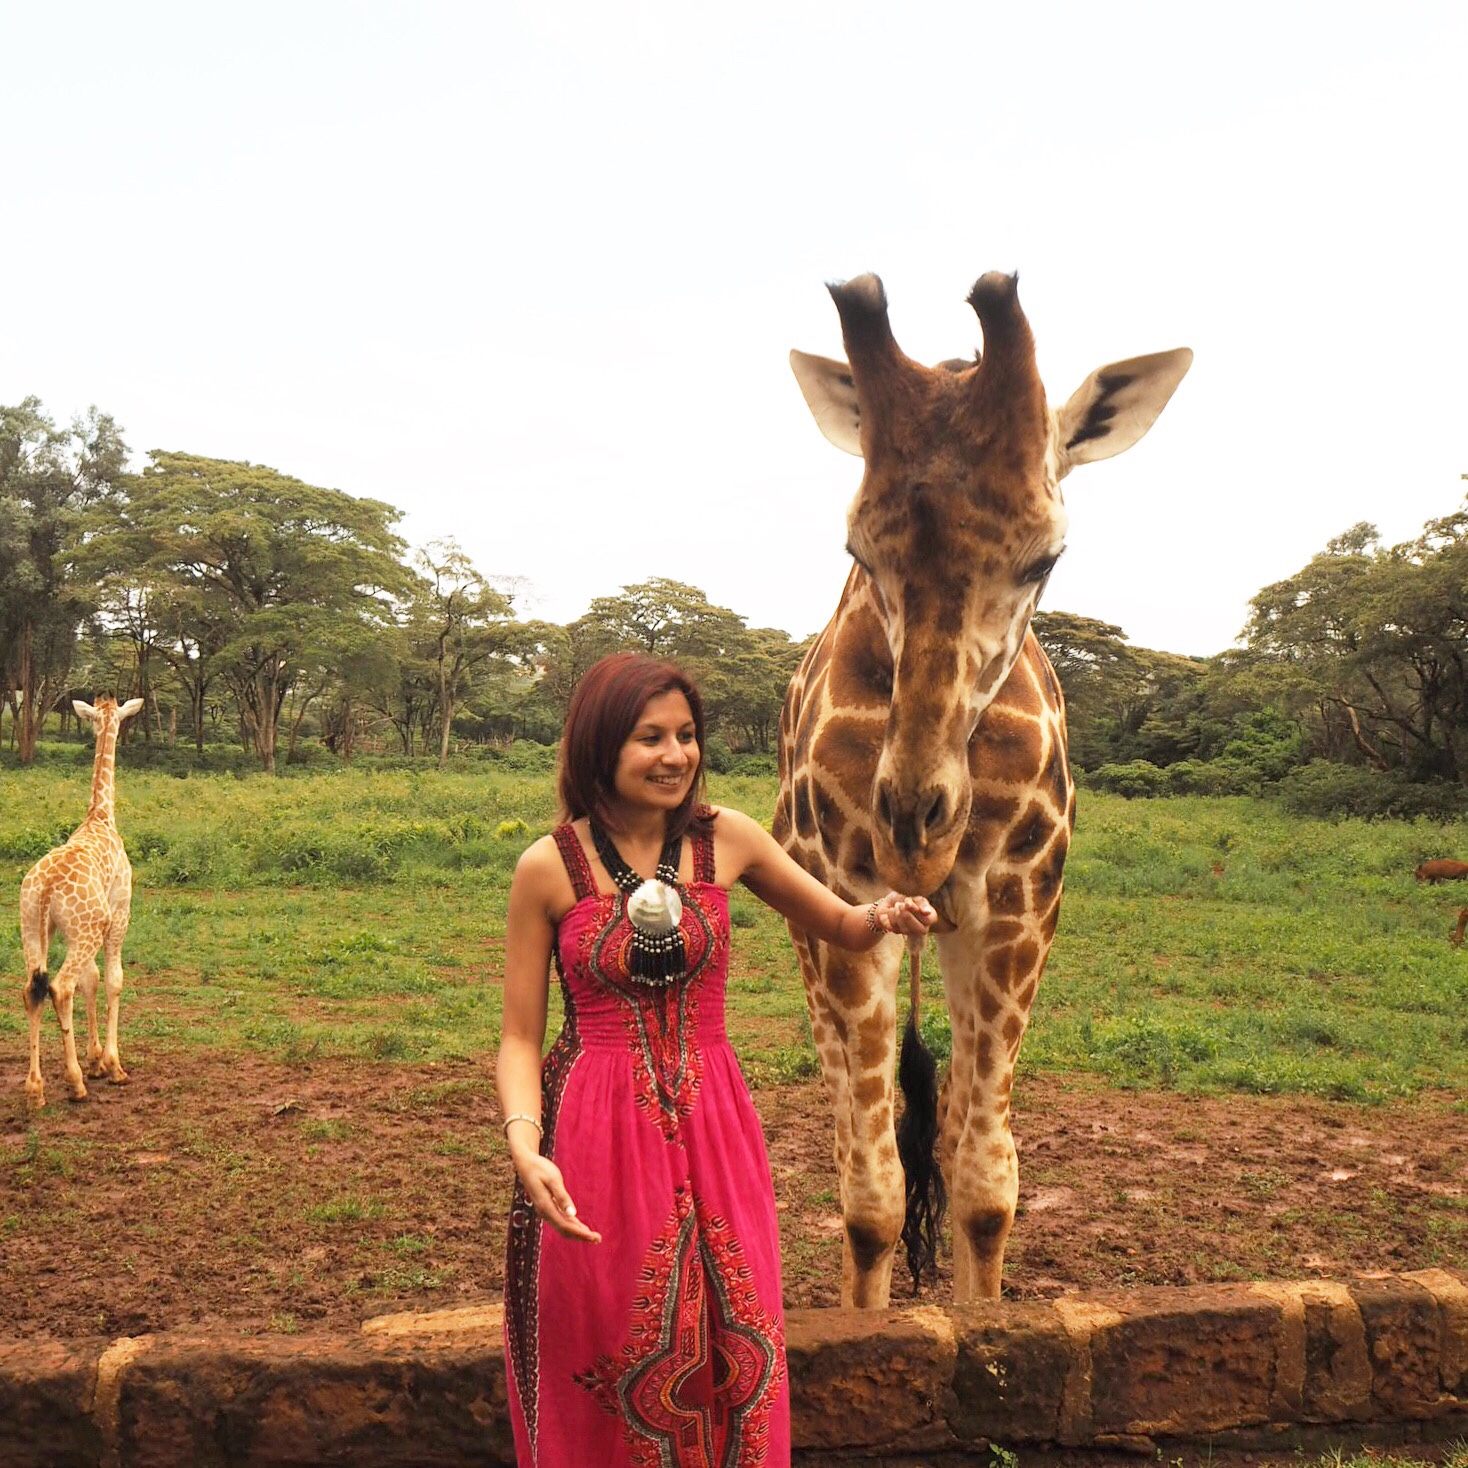 Hand feeding a giraffe at Giraffe Manor, Kenya